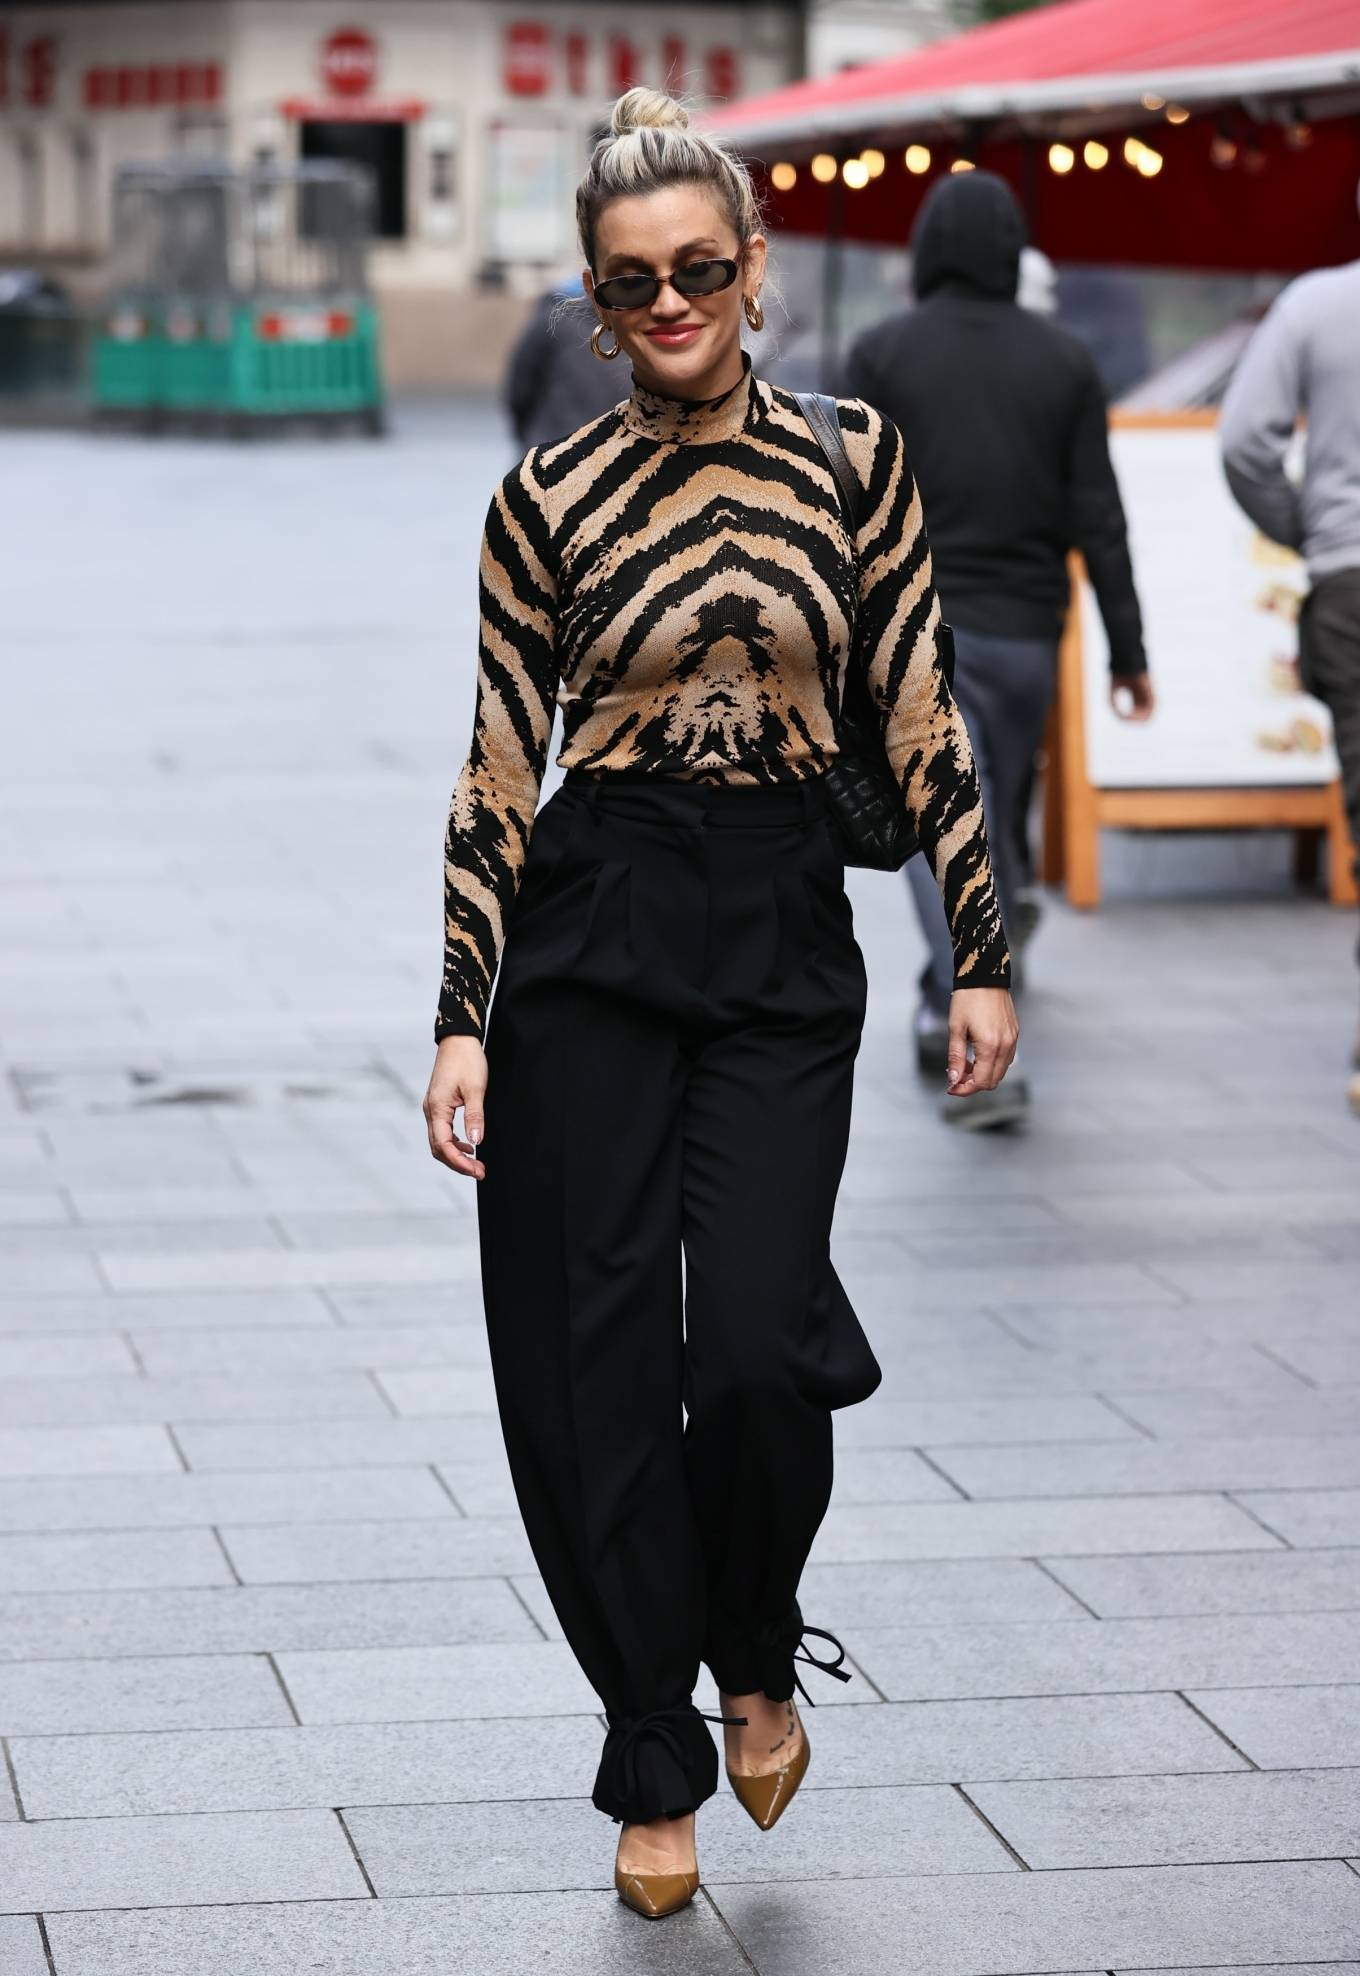 Ashley Roberts - Pictured at Heart radio in animal print in London